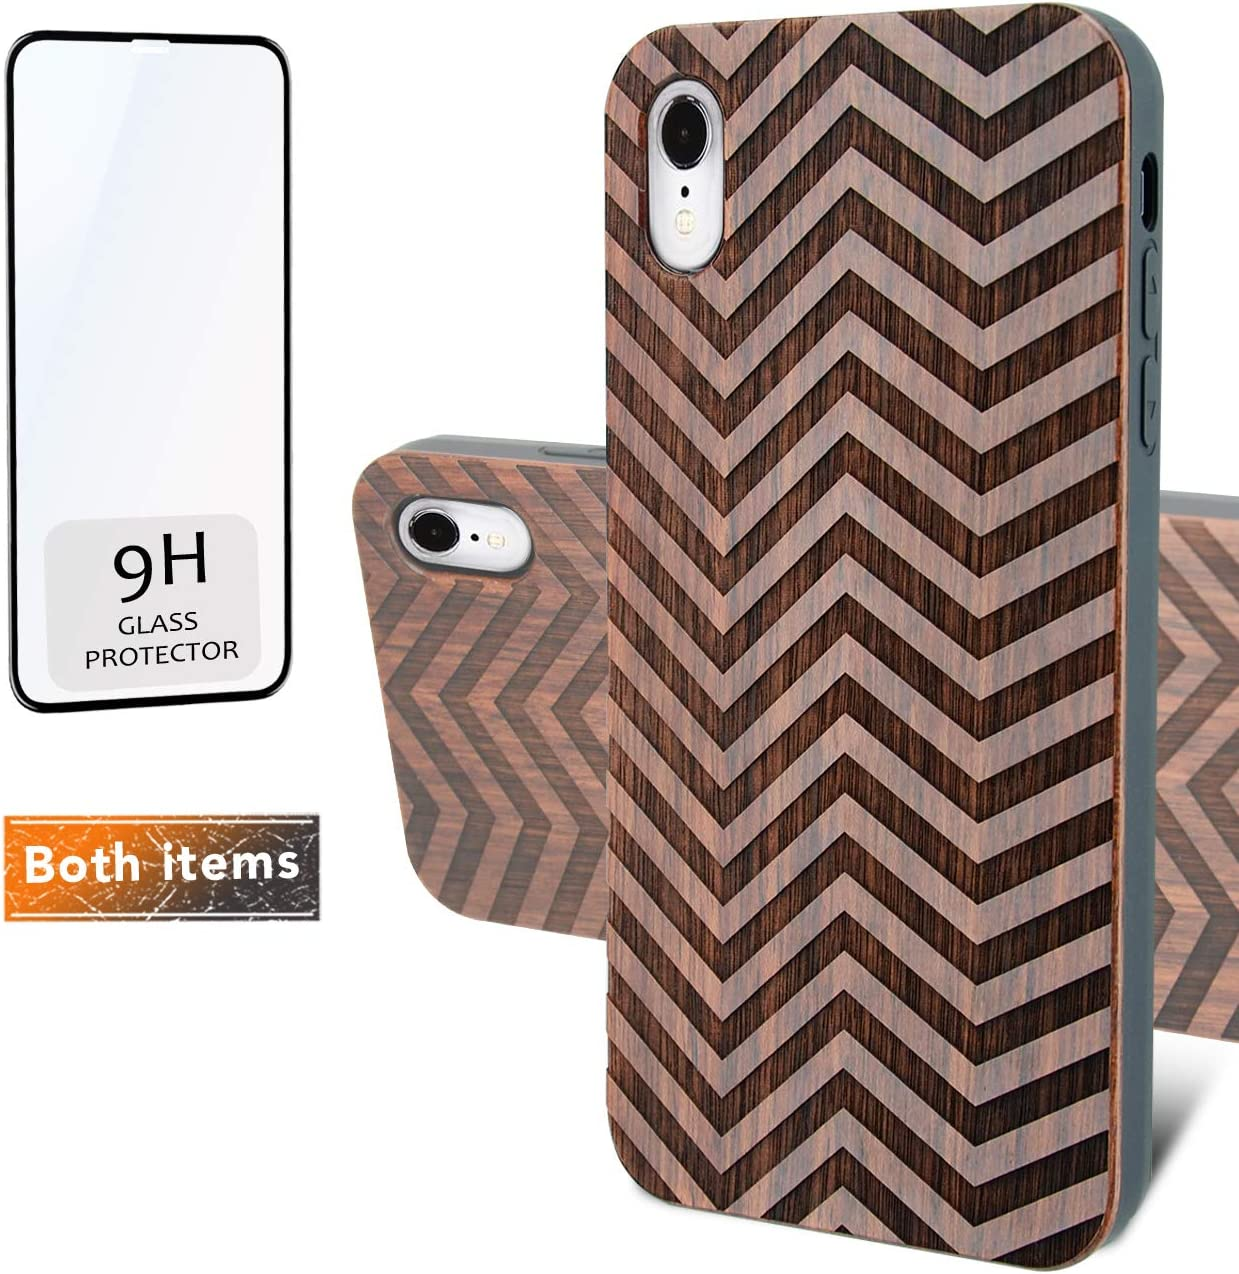 iProductsUS Geometric Wood Phone Case Compatible with iPhone XR and Screen Protector, Engraved Strips Dark Wood, Built-in Metal Plate,Compatible Wireless Charging,TPU Shockproof Cover (6.1 inch)